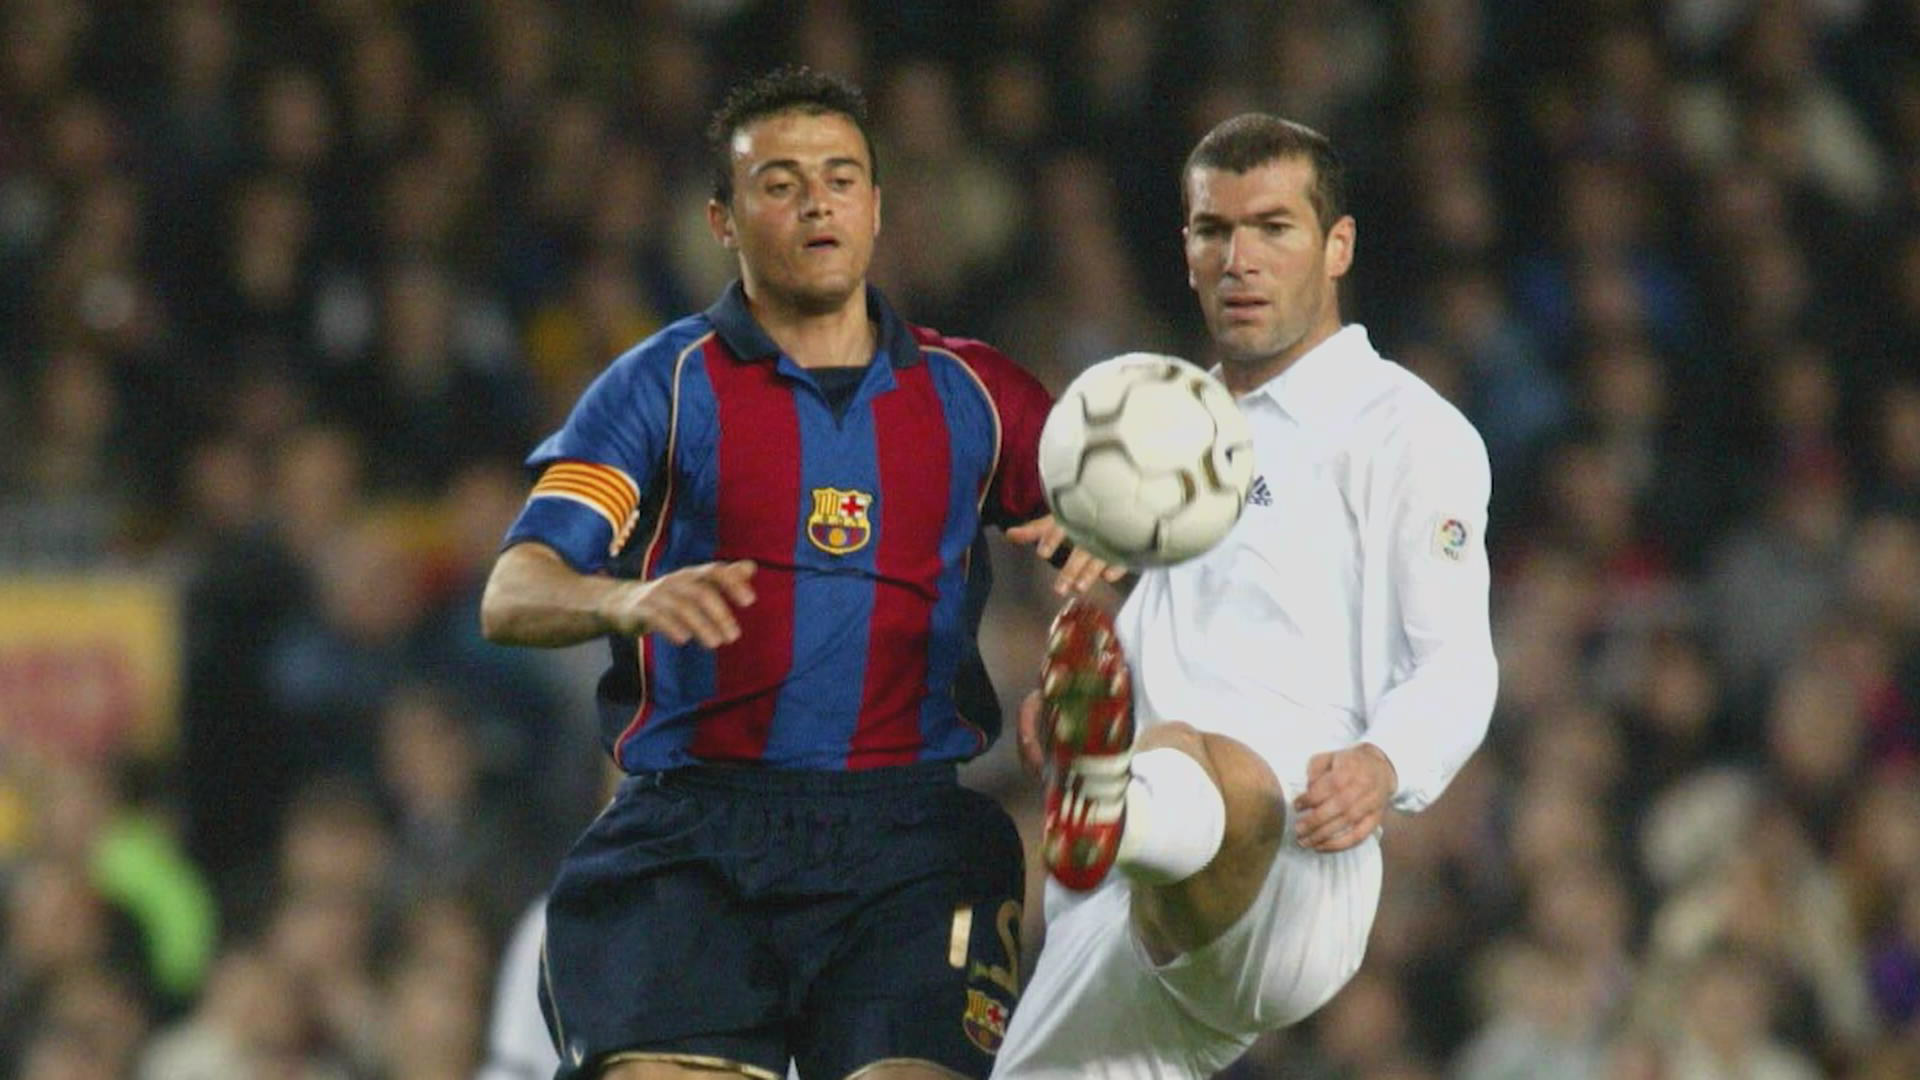 Enrique vs Zidane